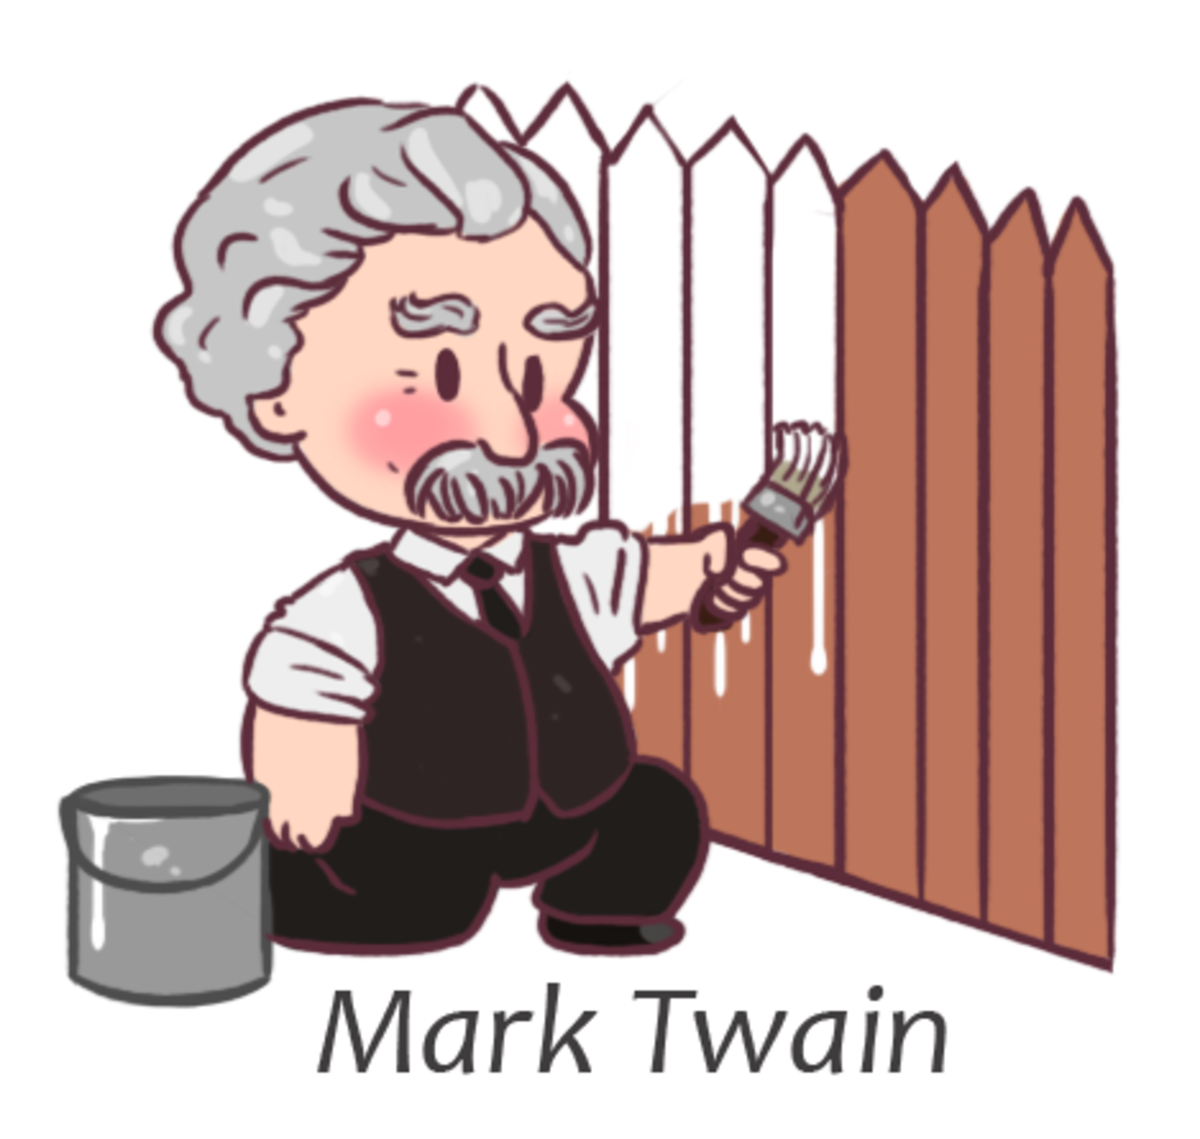 chibi Mark Twain. Chibi Mark Twain was a suggestion I took because look at that mustache and those eyebrows. Usually I play up the goofiness of the looks for ch